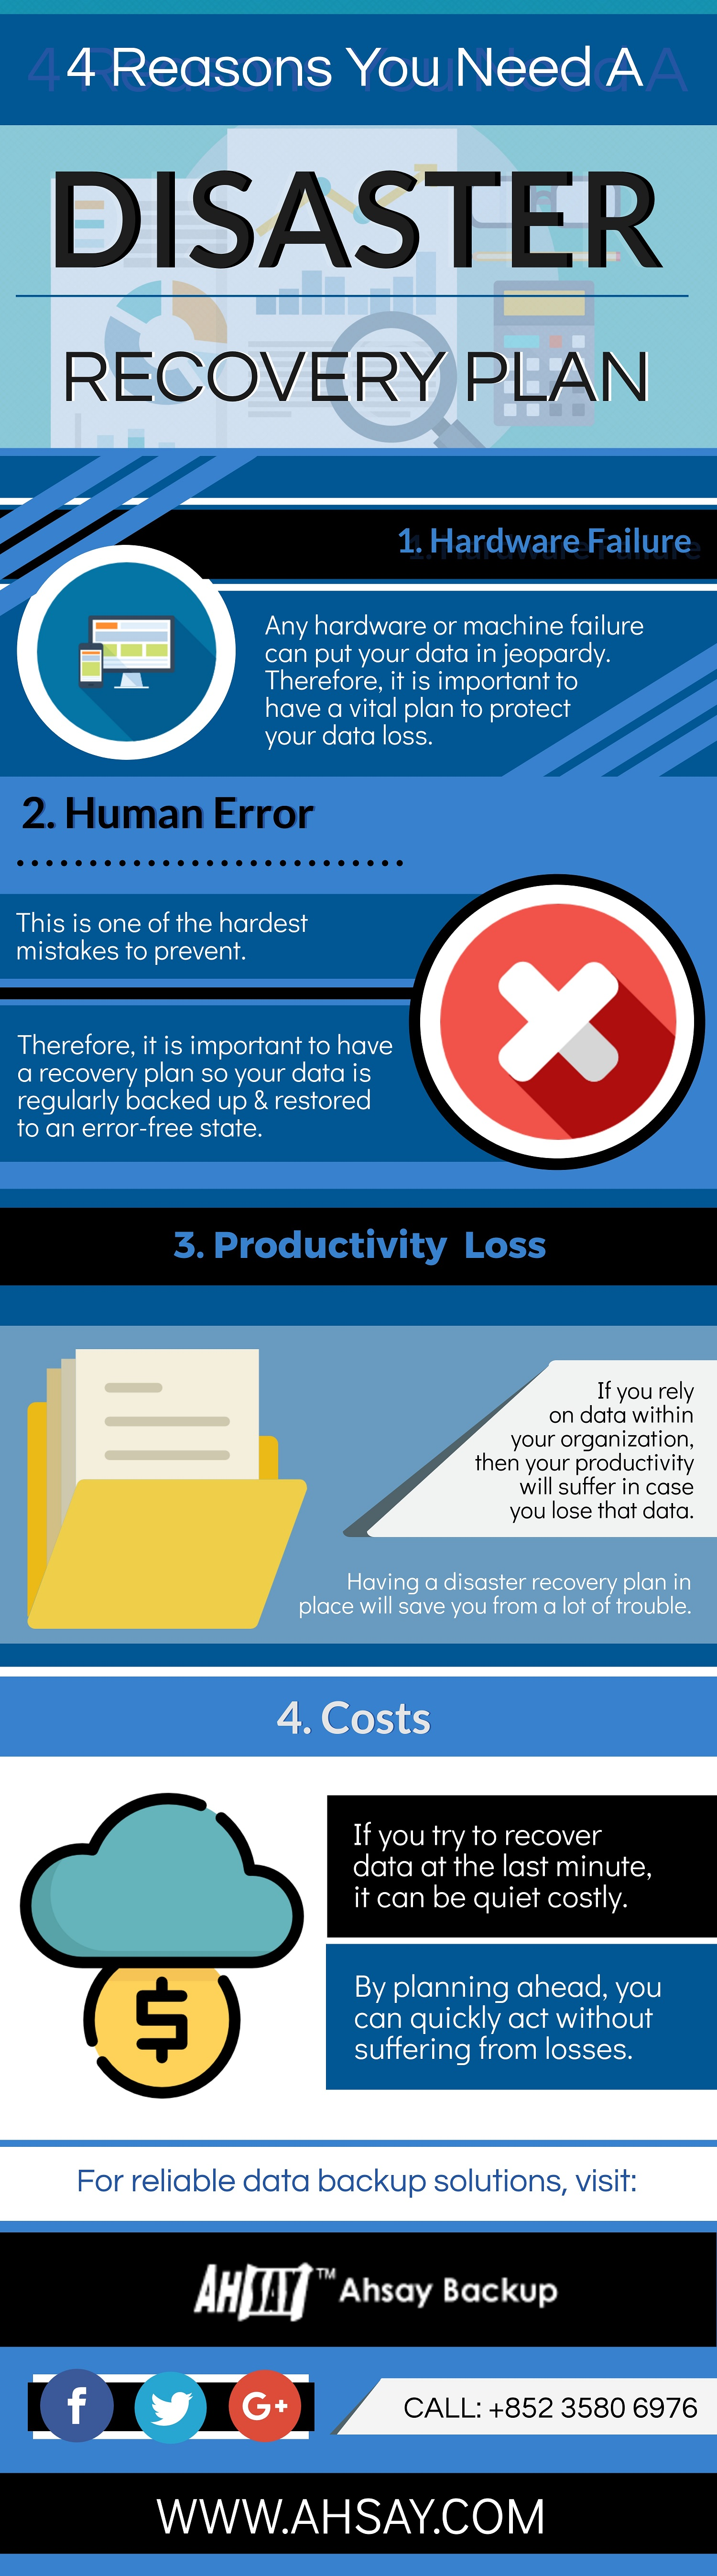 4-reasons-you-need-a-disaster-recovery-plan